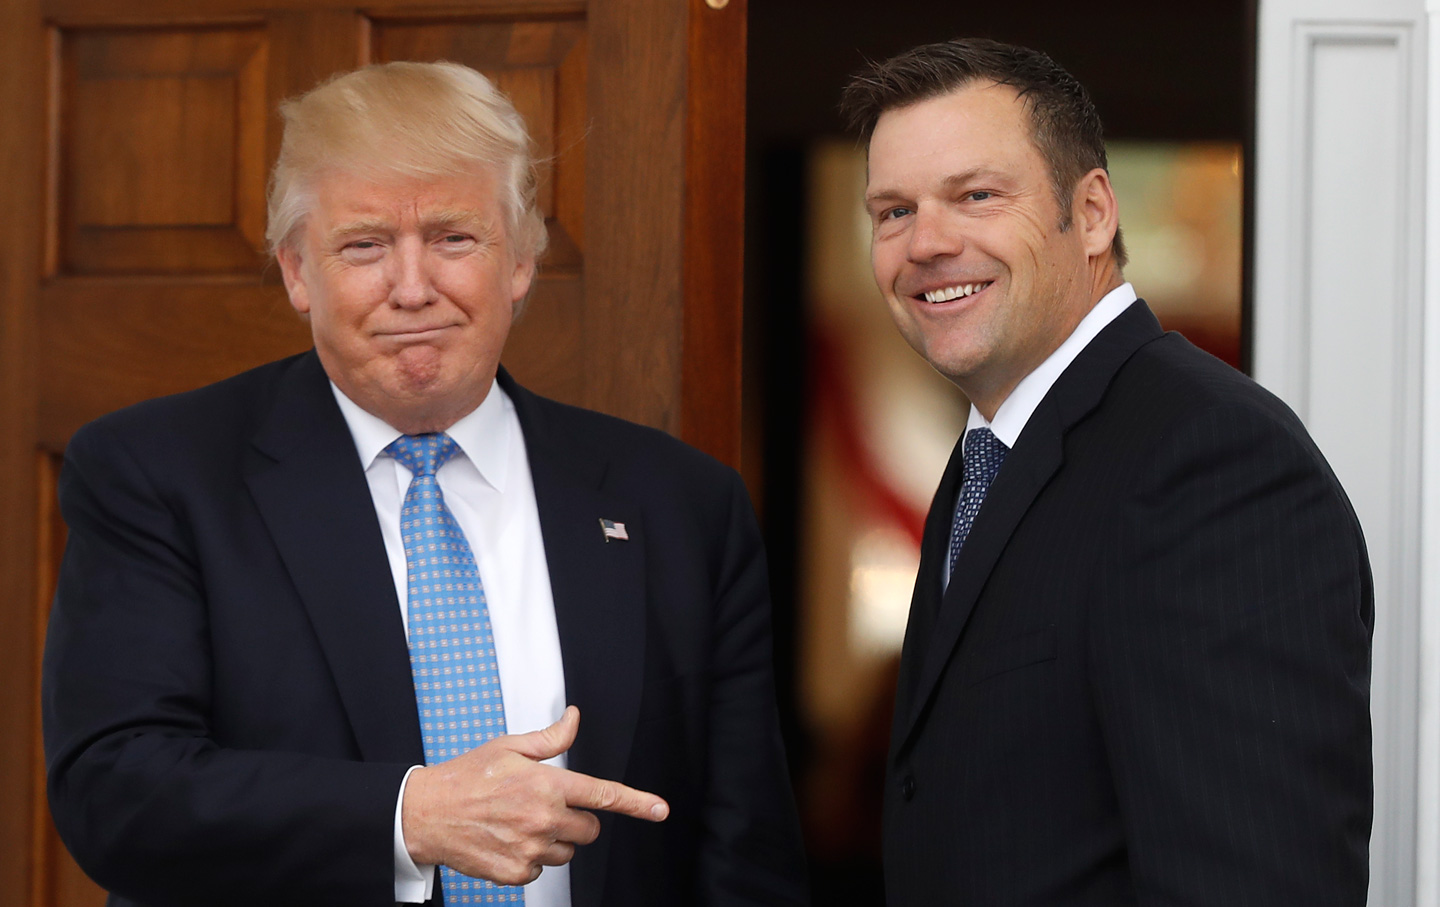 Donald Trump and Kris Kobach